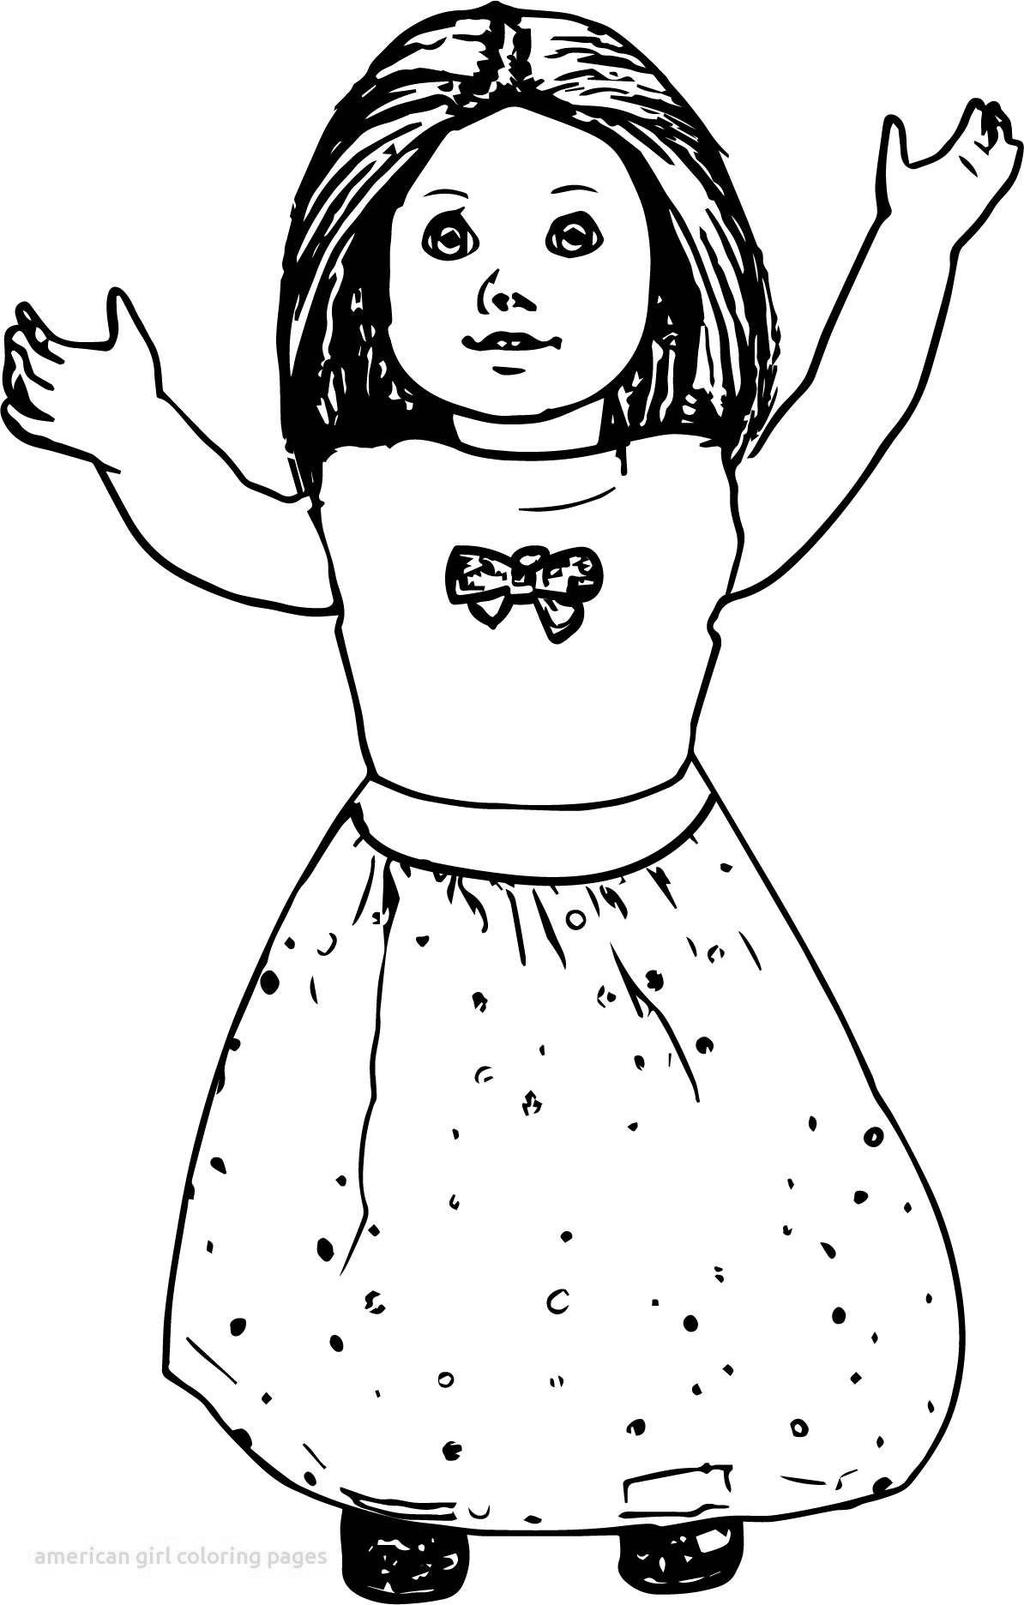 Free Cute American Girl Coloring Pages Dolls Clipart printable